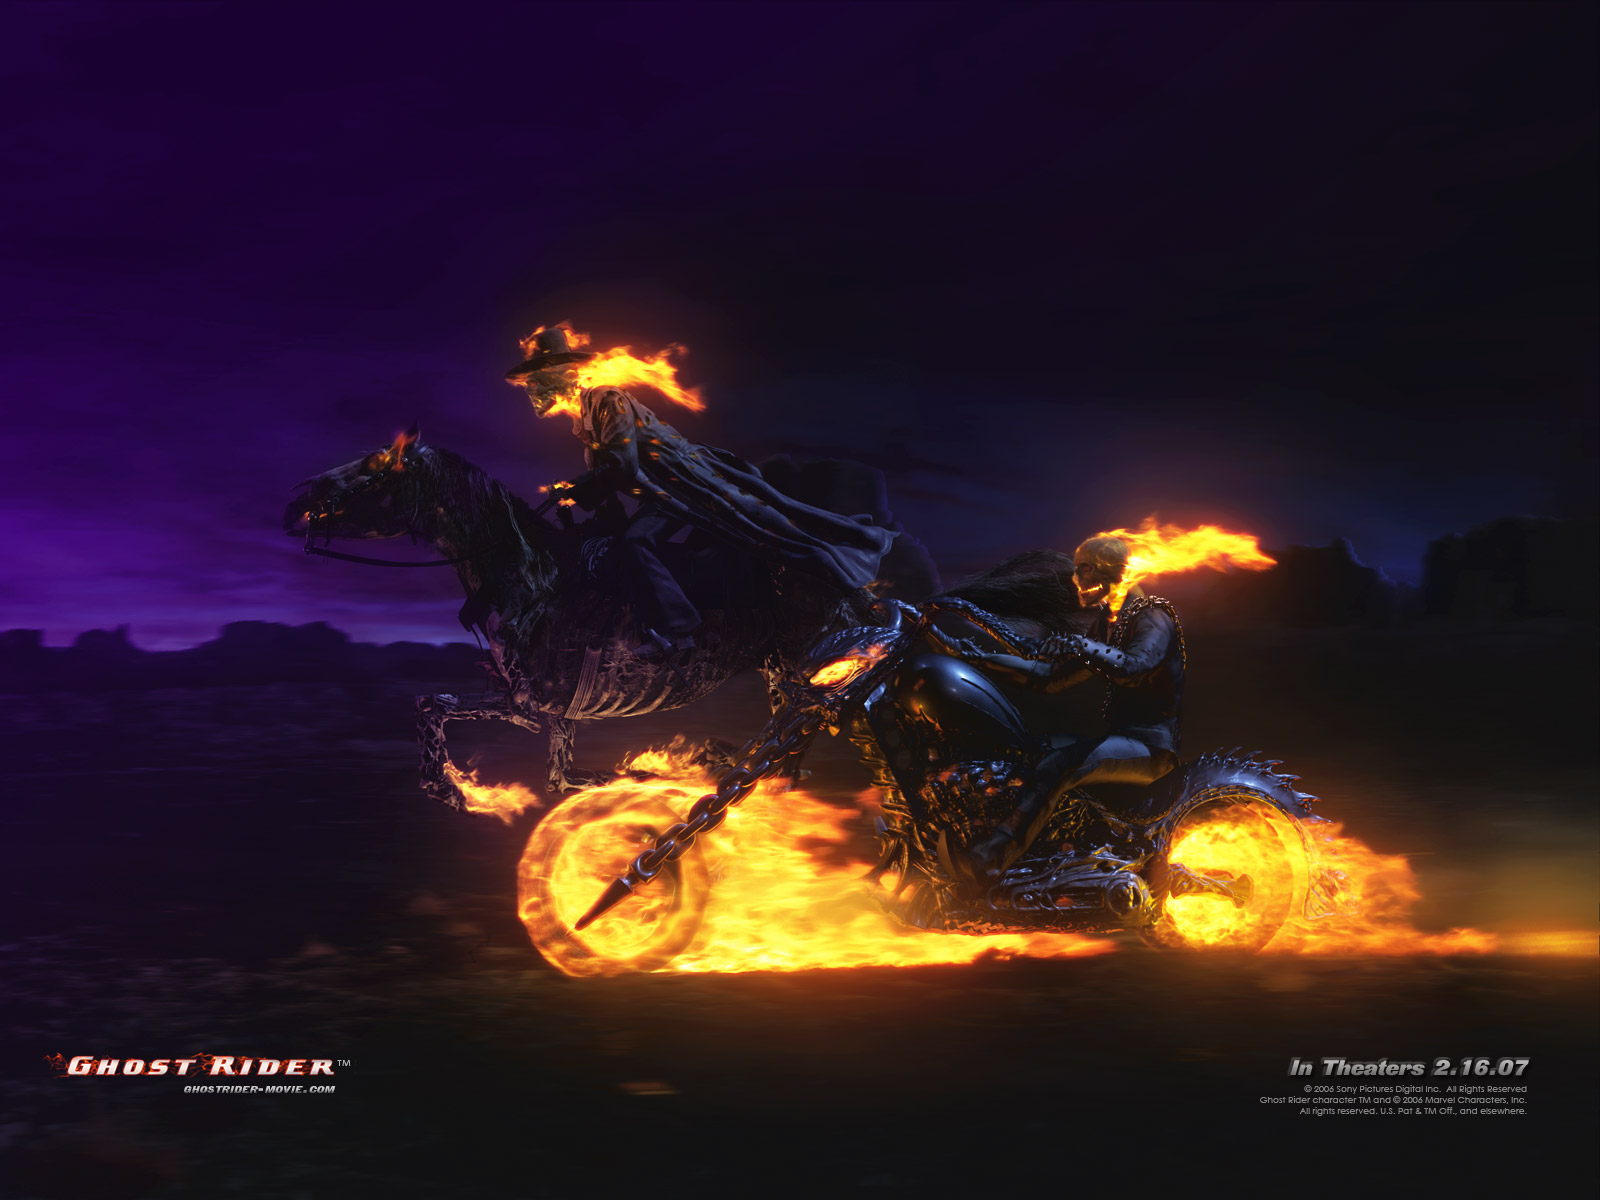 ghost rider wallpaper bike - photo #21